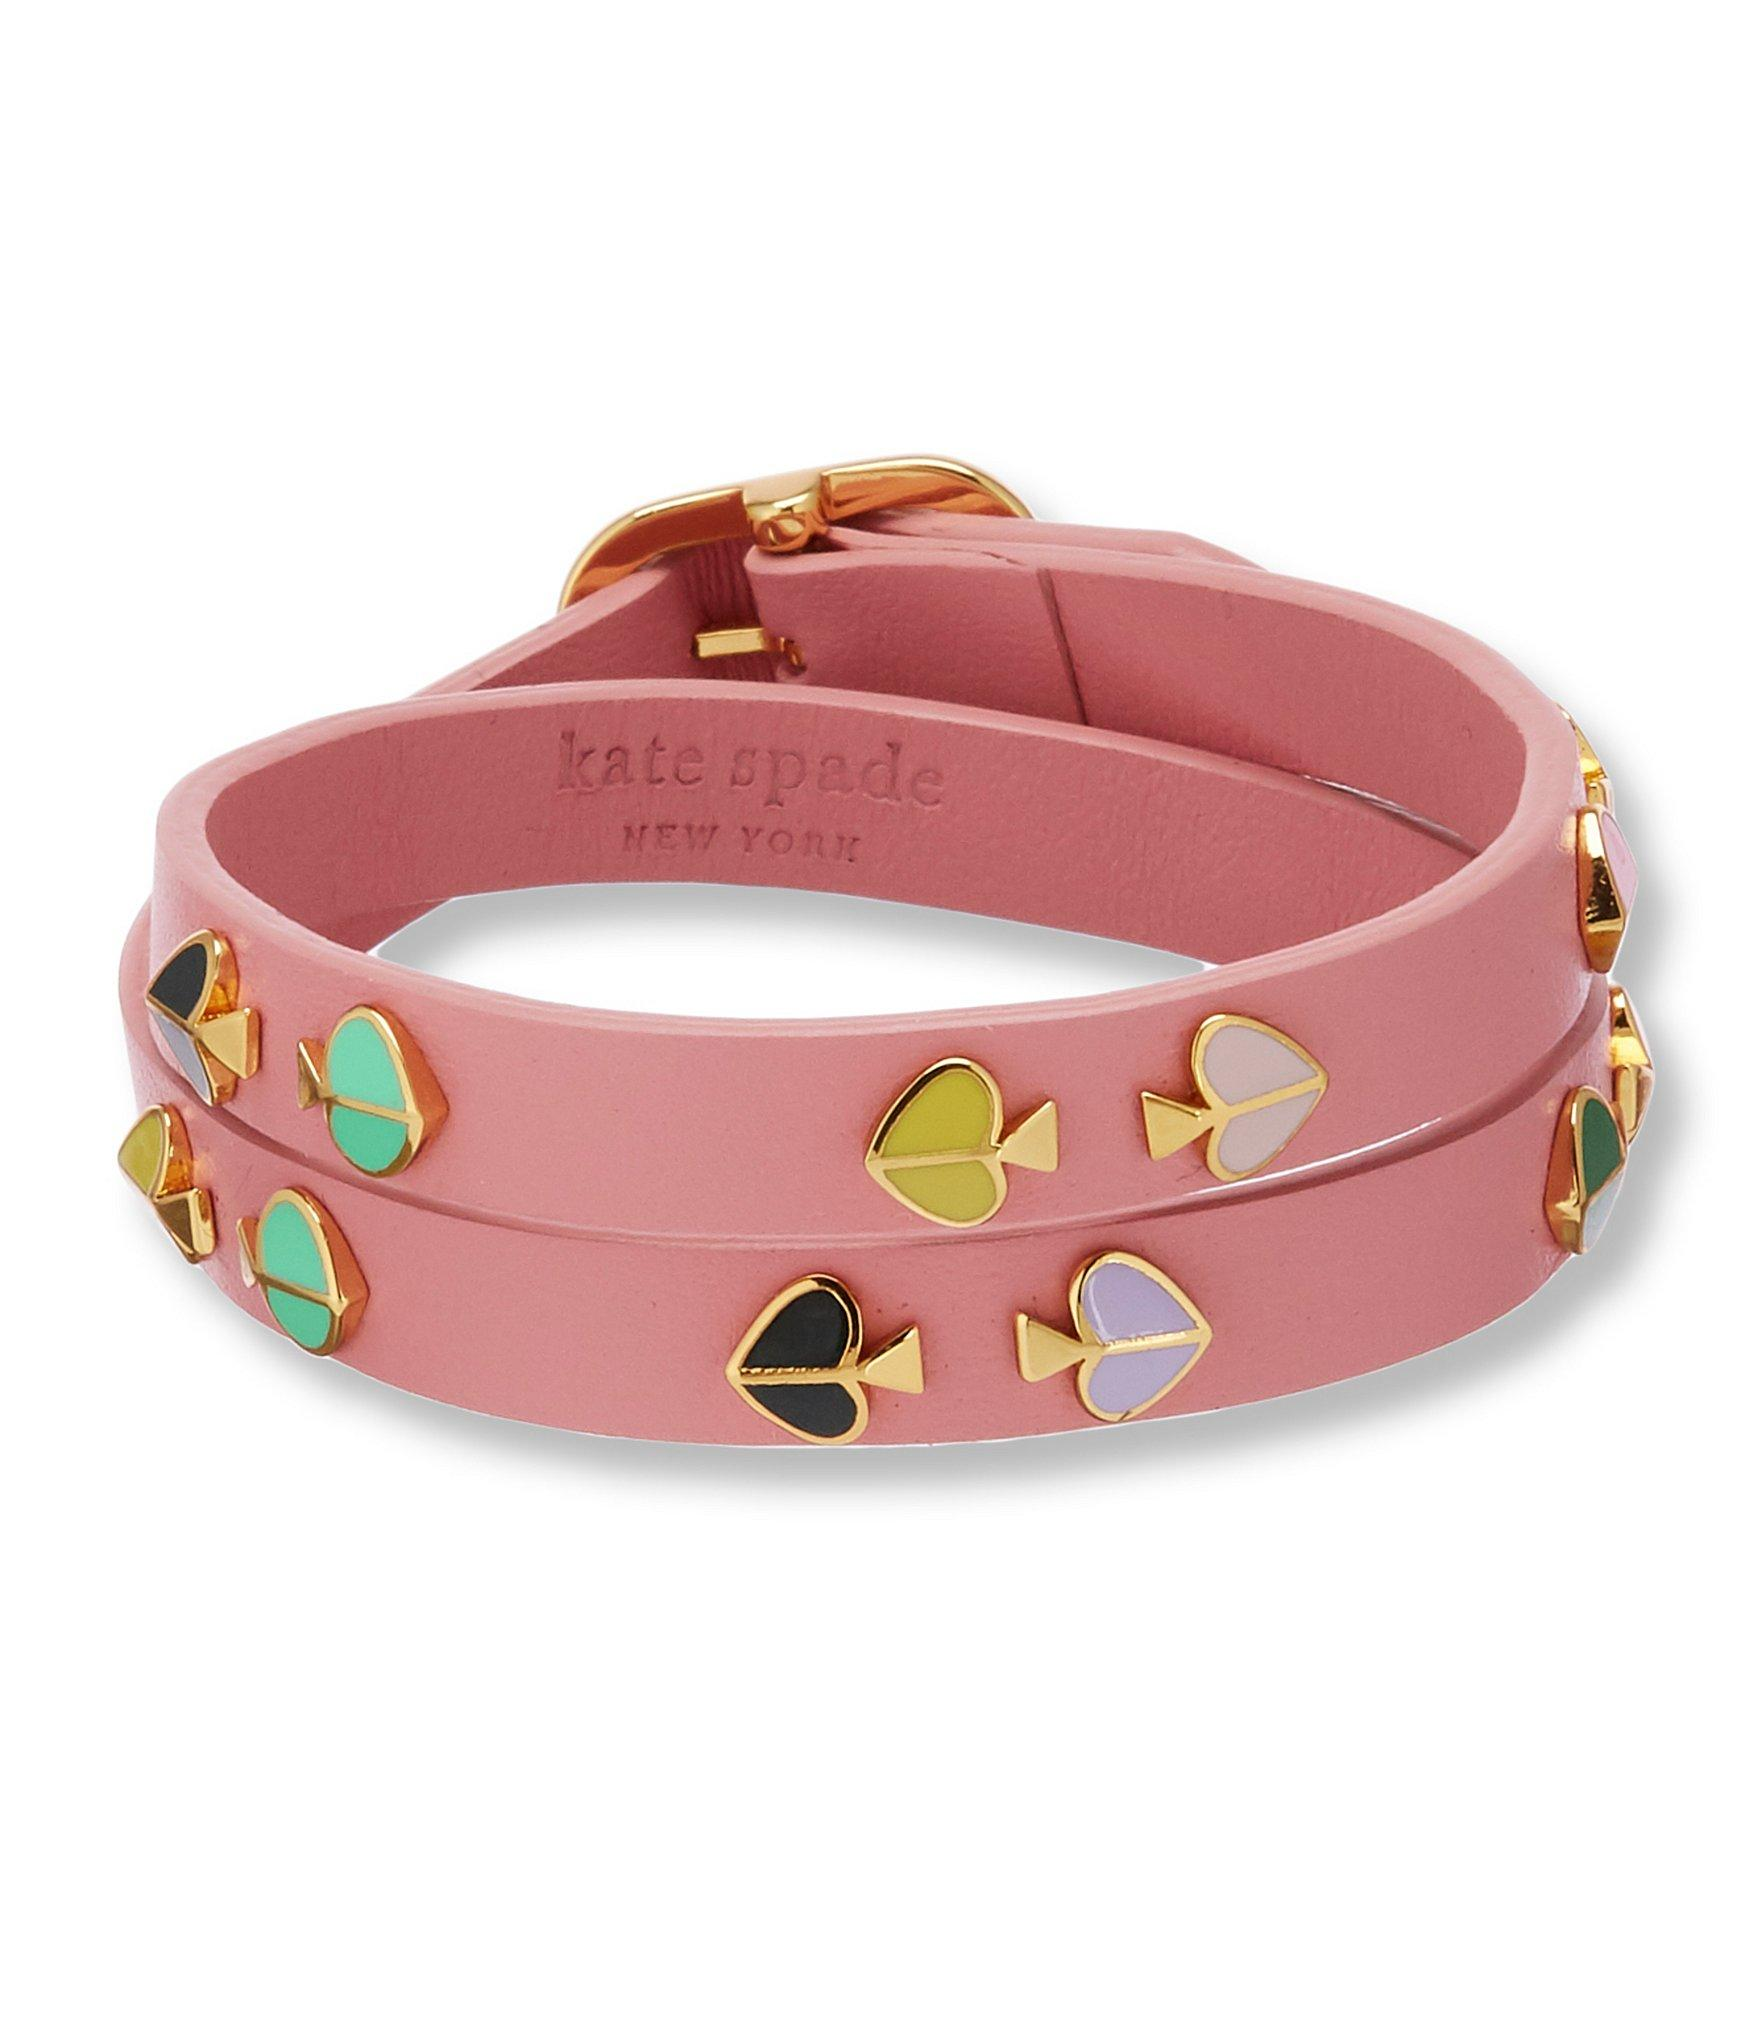 3ff9d734c2d4ce Kate Spade - Pink Heritage Spade Double Wrap Leather Bracelet - Lyst. View  fullscreen